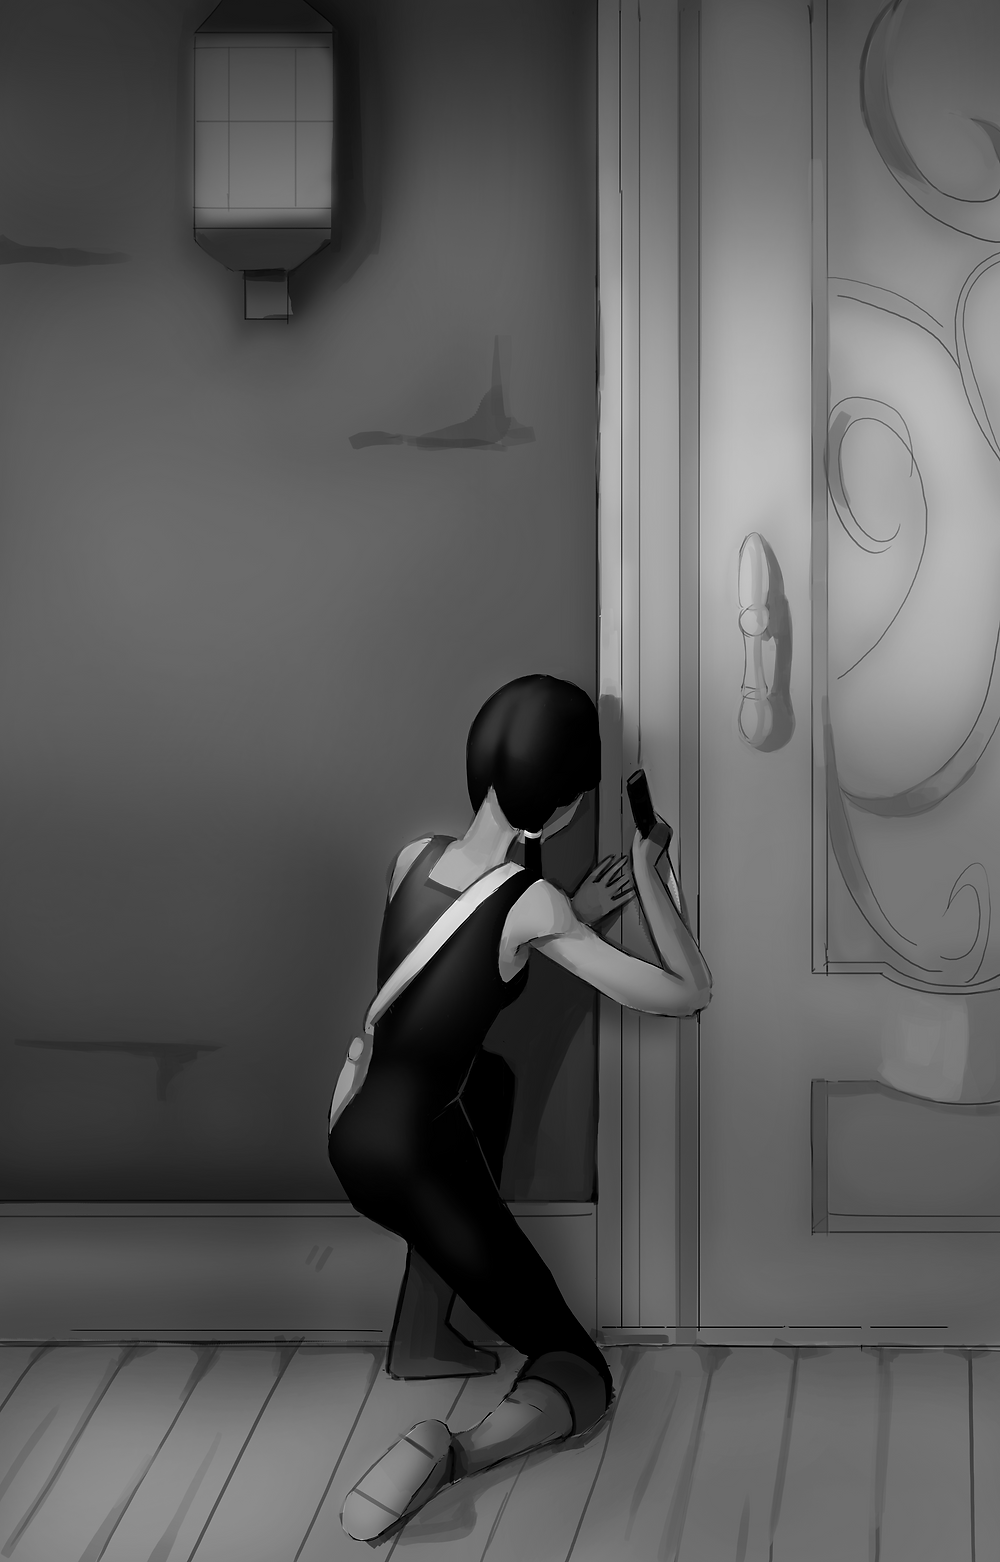 Polly uses a knife to remove a spell rune by a fancy-looking door.